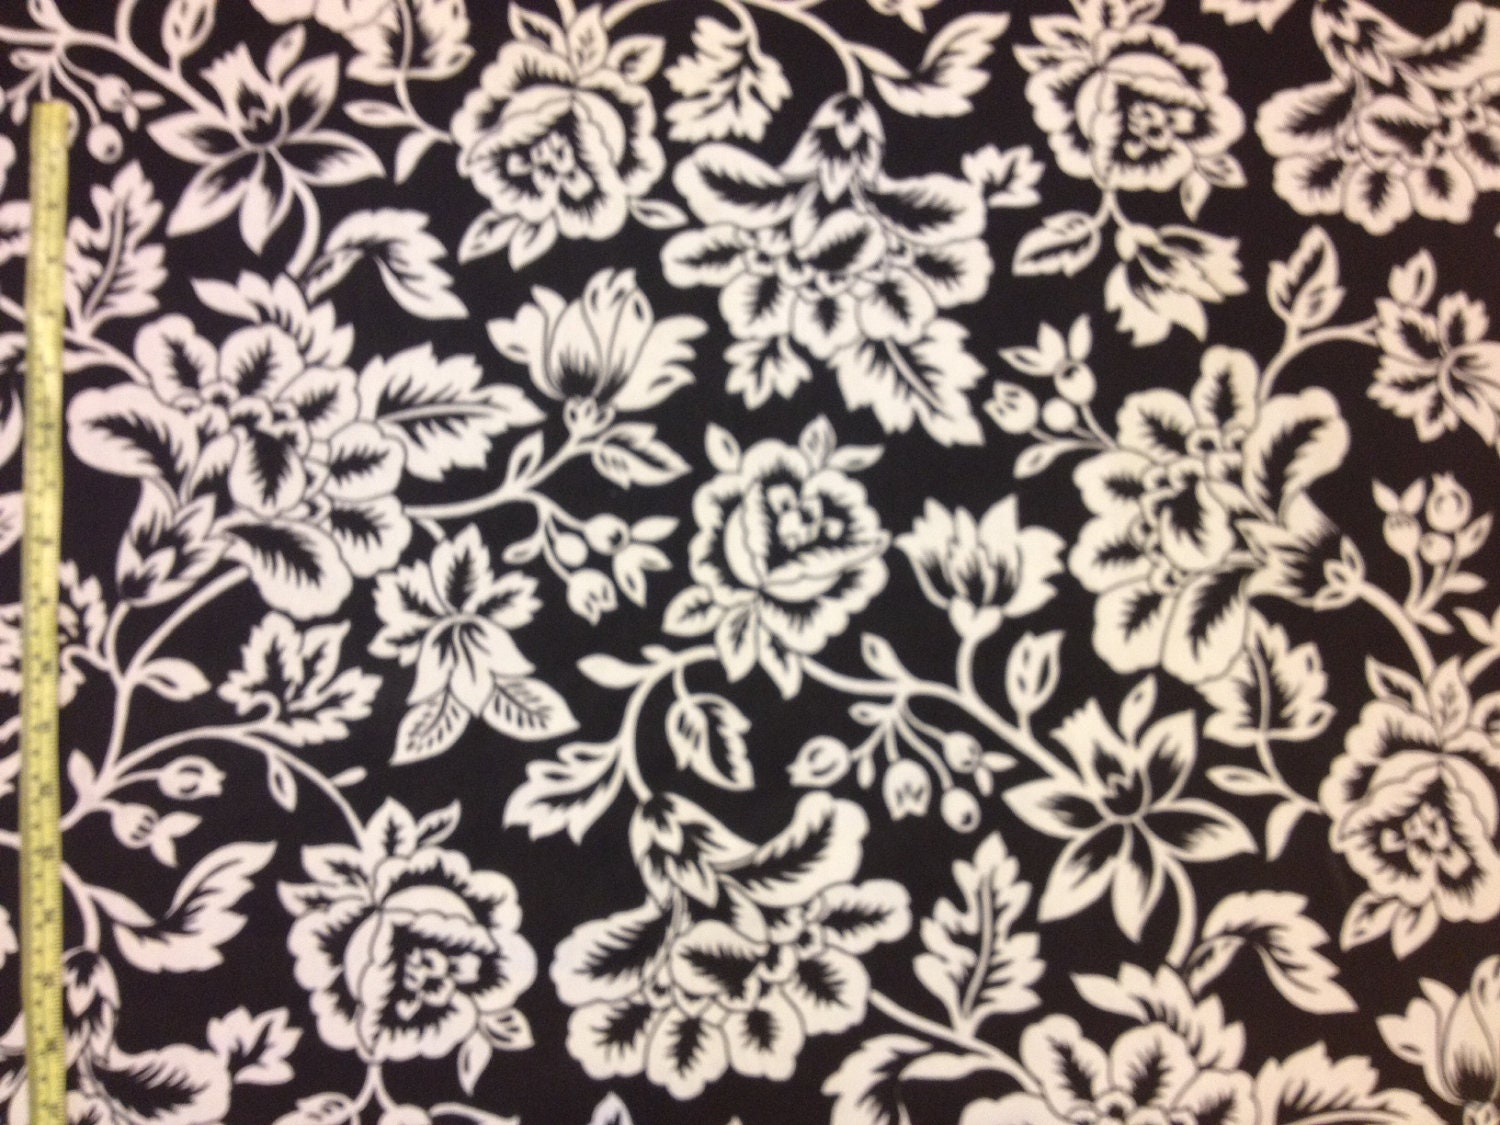 CLEARANCE Black and White Floral Home Decor by